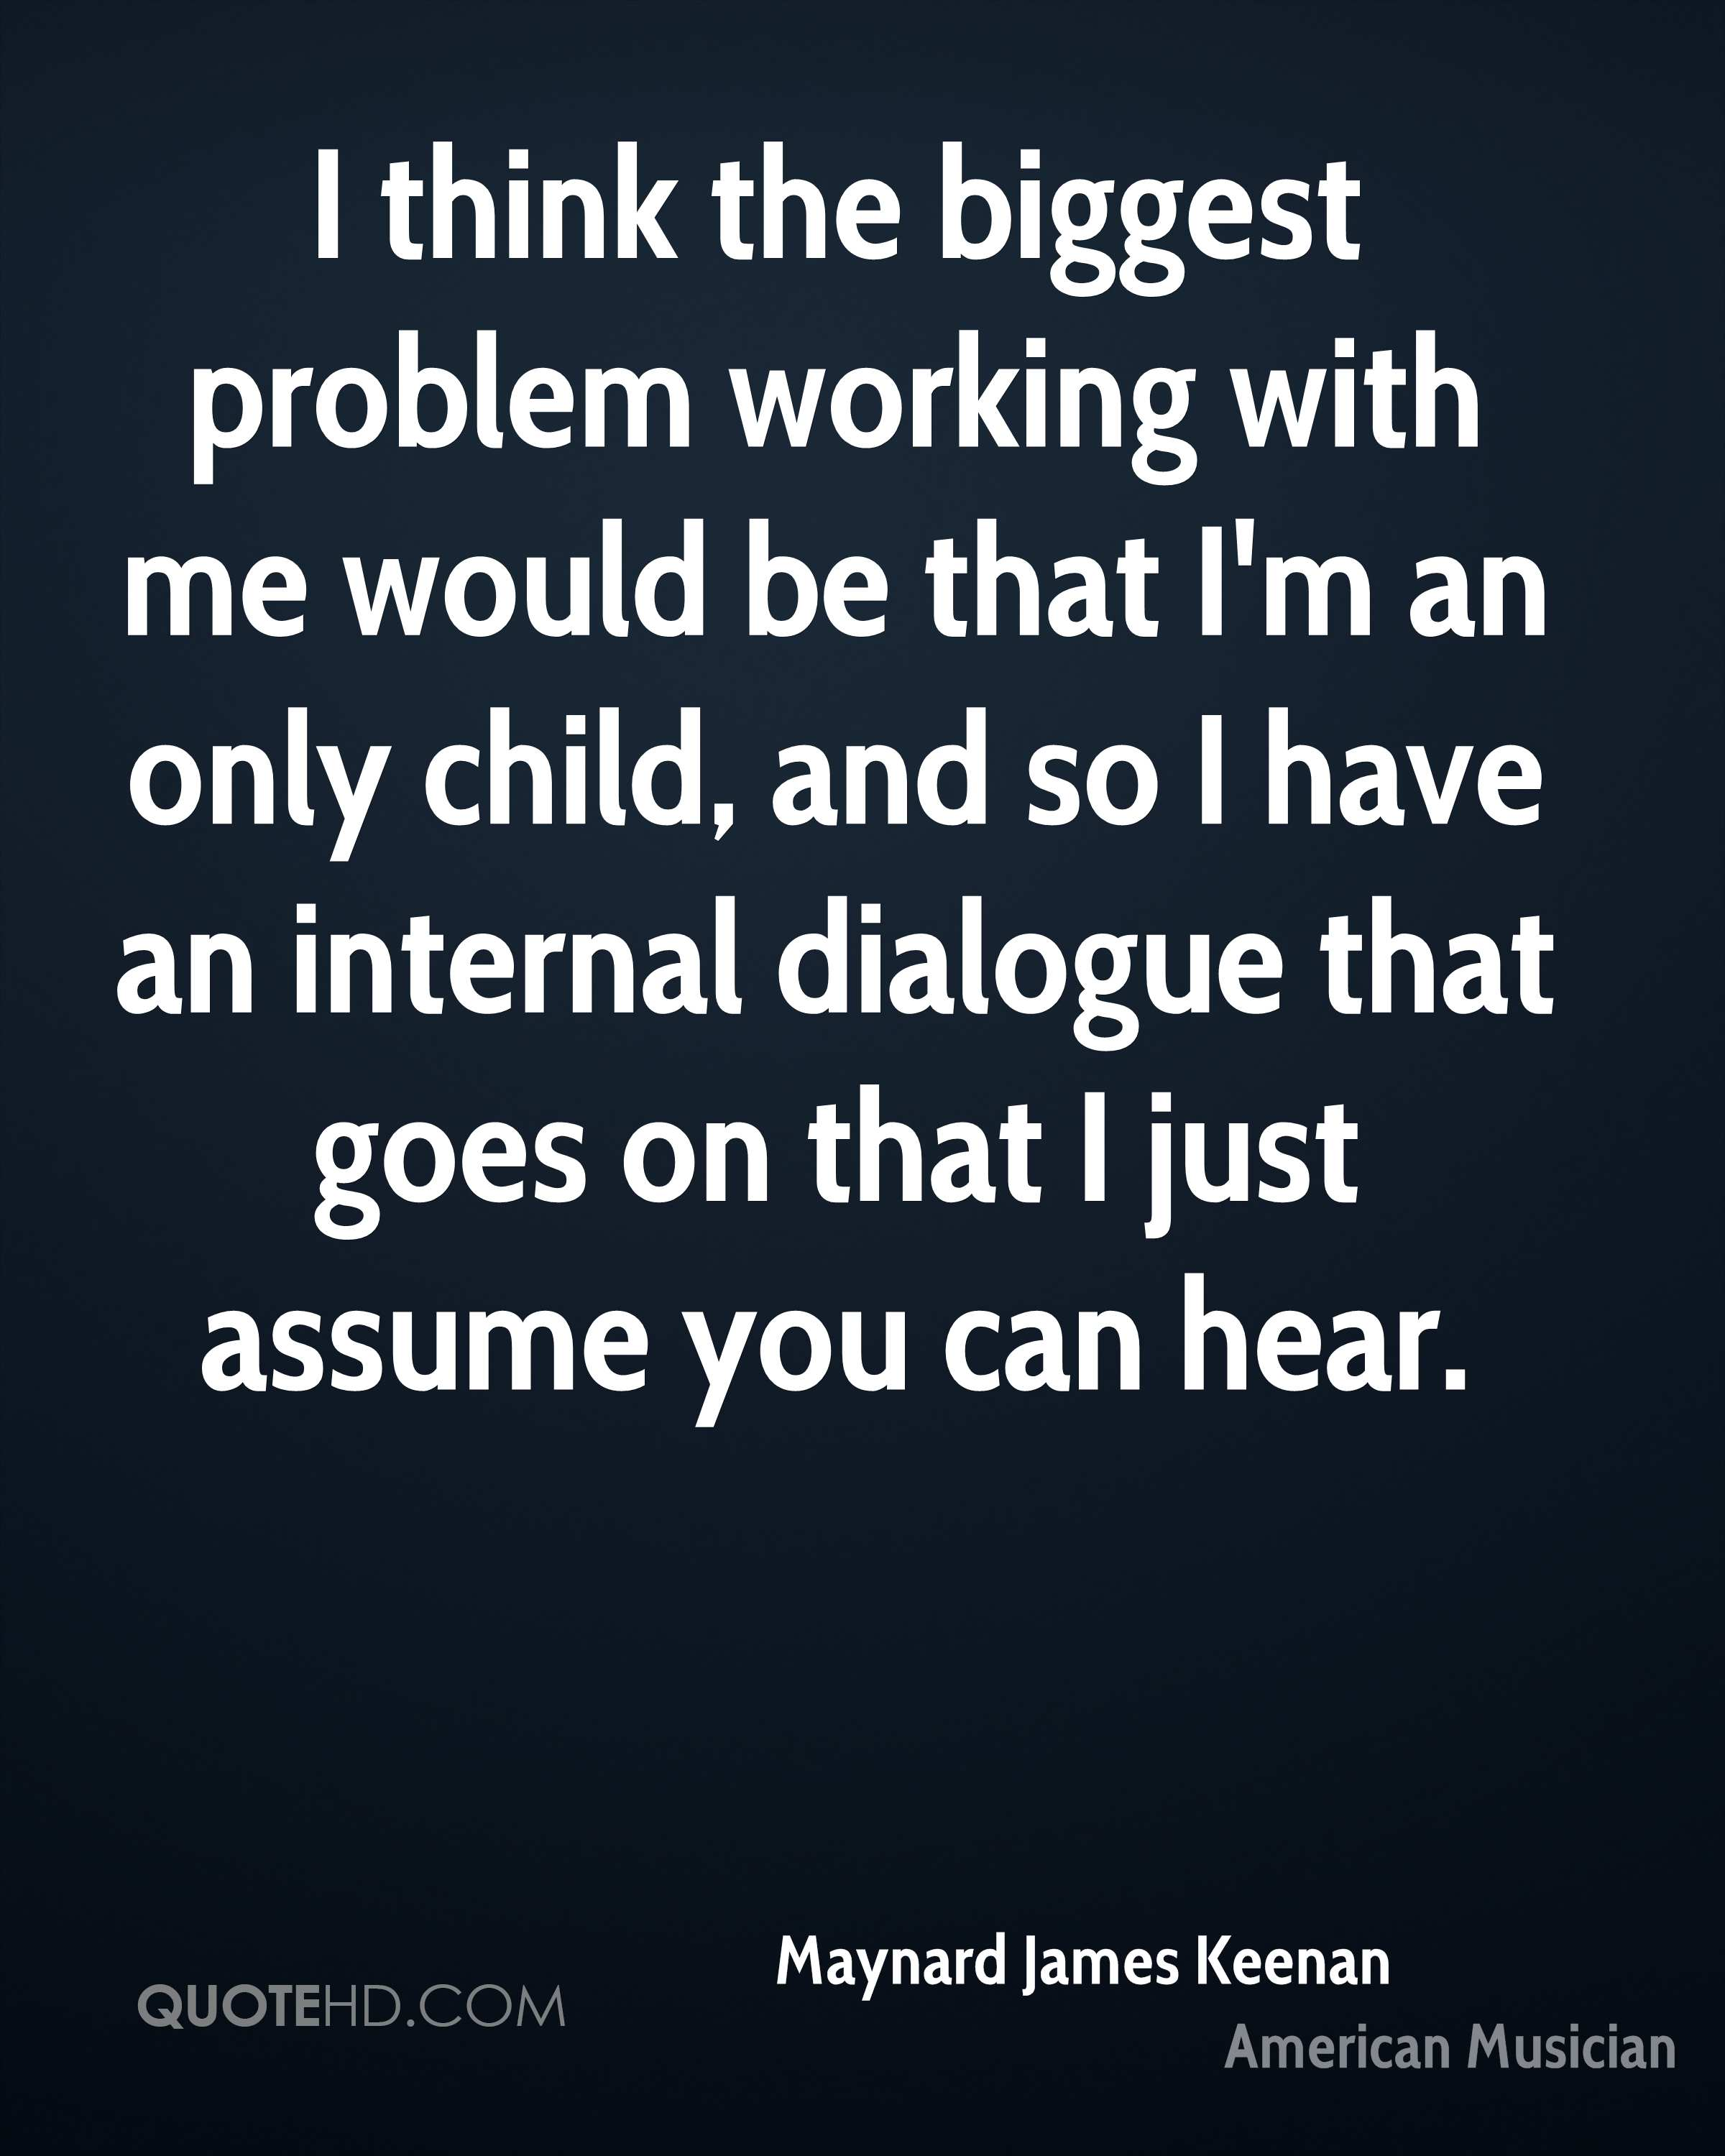 I think the biggest problem working with me would be that I'm an only child, and so I have an internal dialogue that goes on that I just assume you can hear.